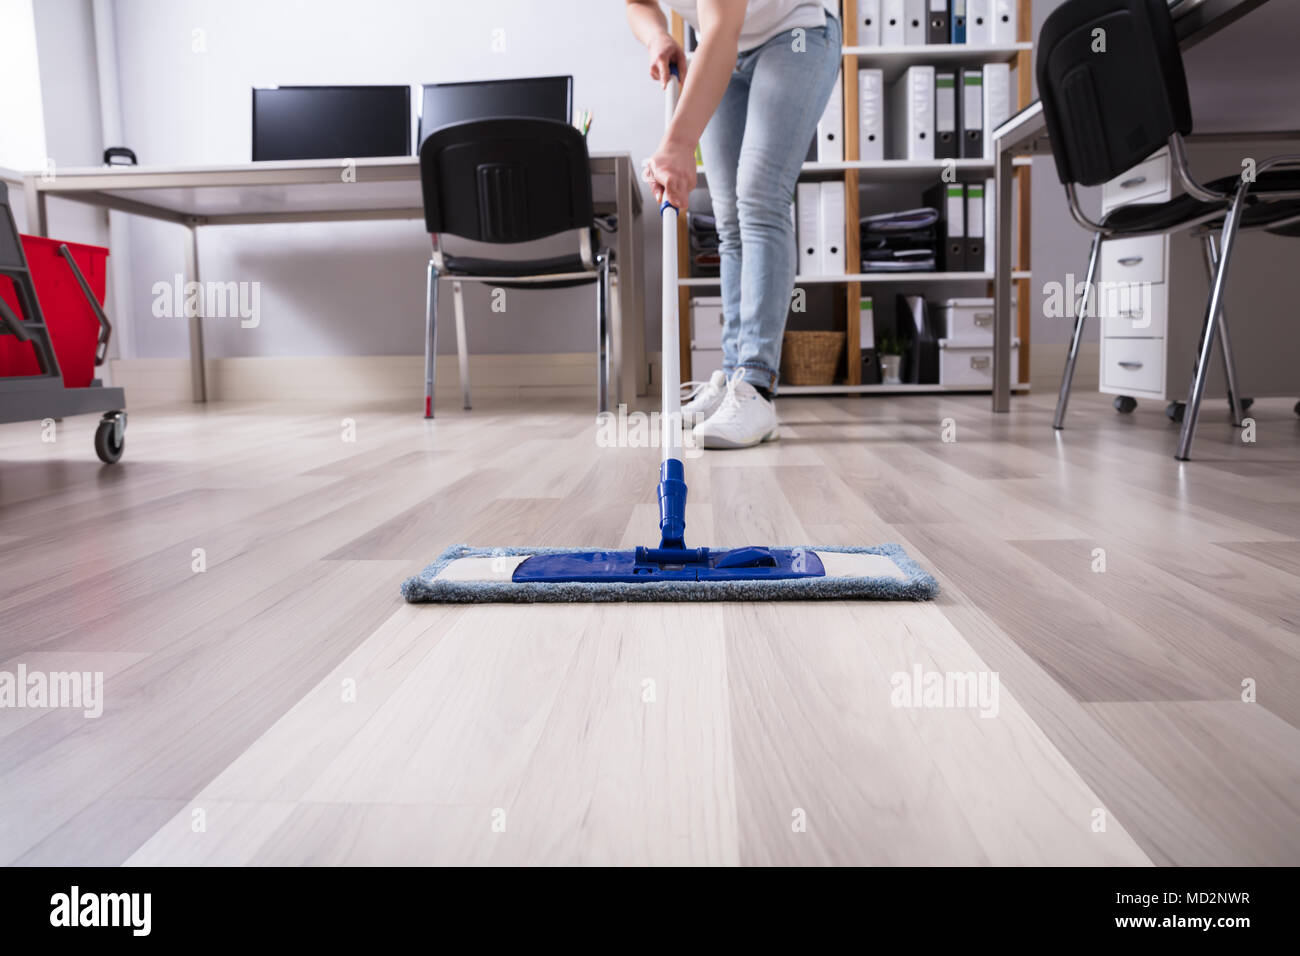 Janitor's Hand Cleaning Floor With Mop At Workplace - Stock Image